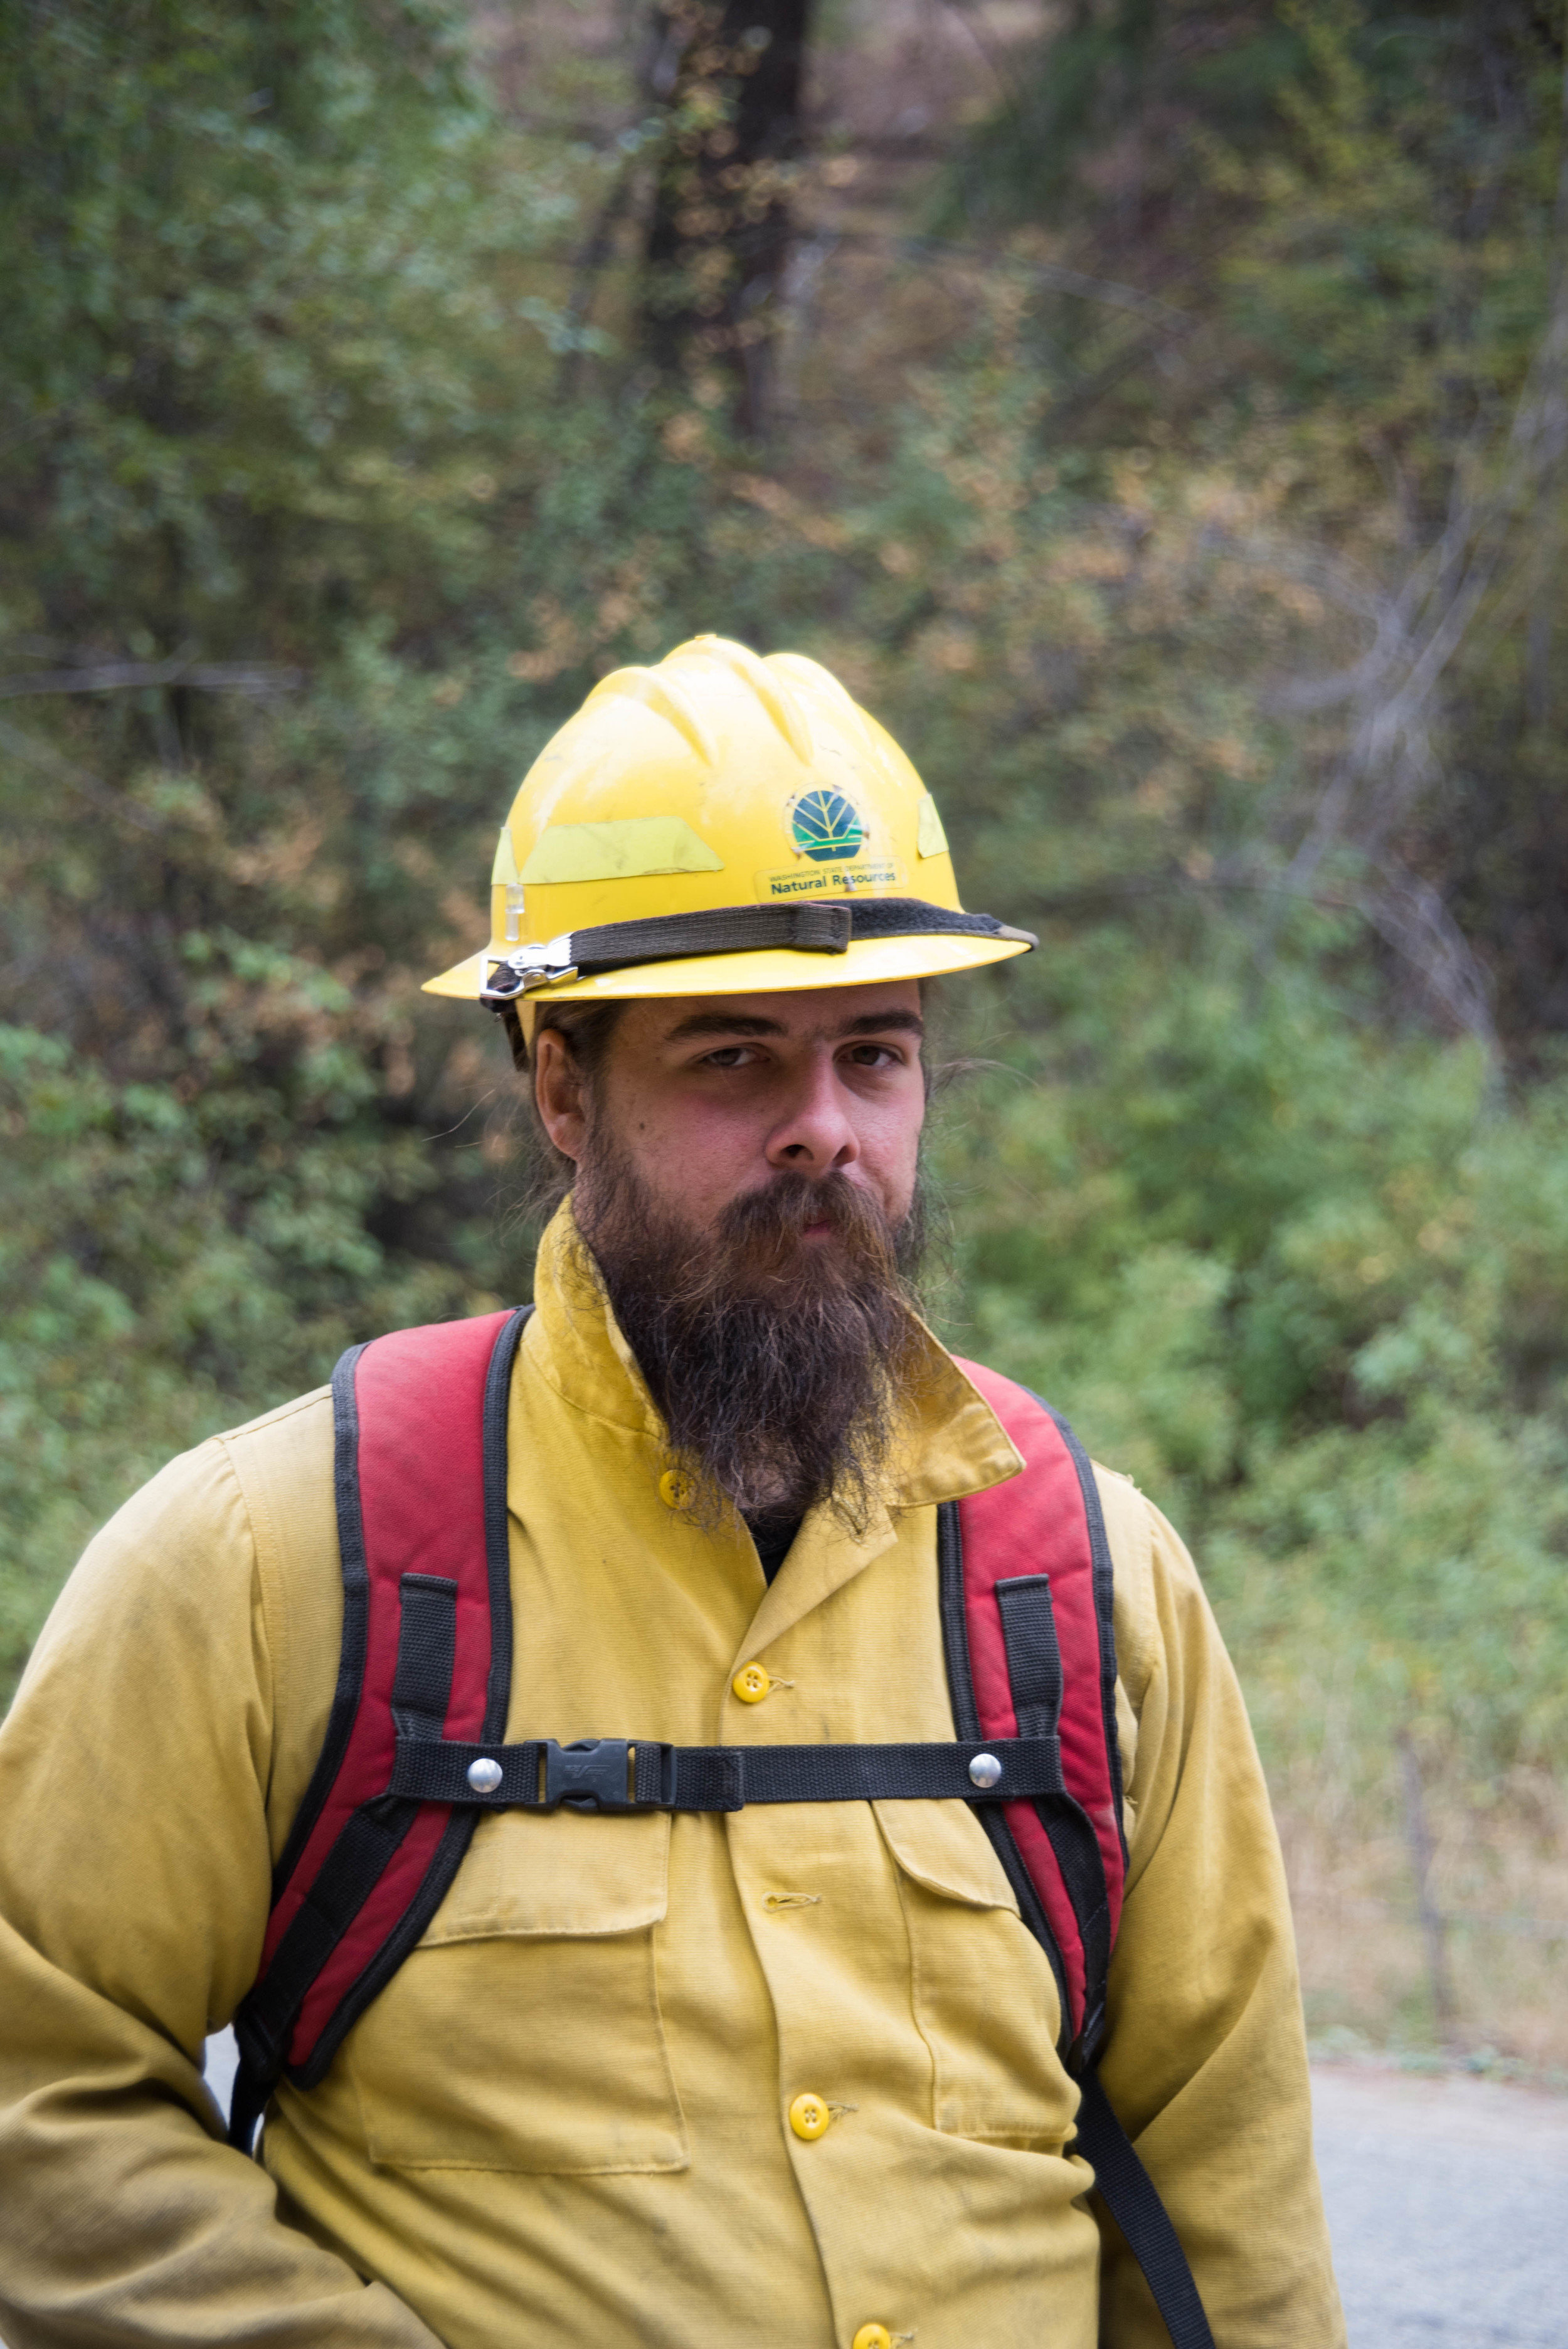 Wildfire fighter Byron Florence is part of a DNR crew from the Olympic Peninsula.  One of the many things to be on the lookout for according to Byron are bears and cougars.